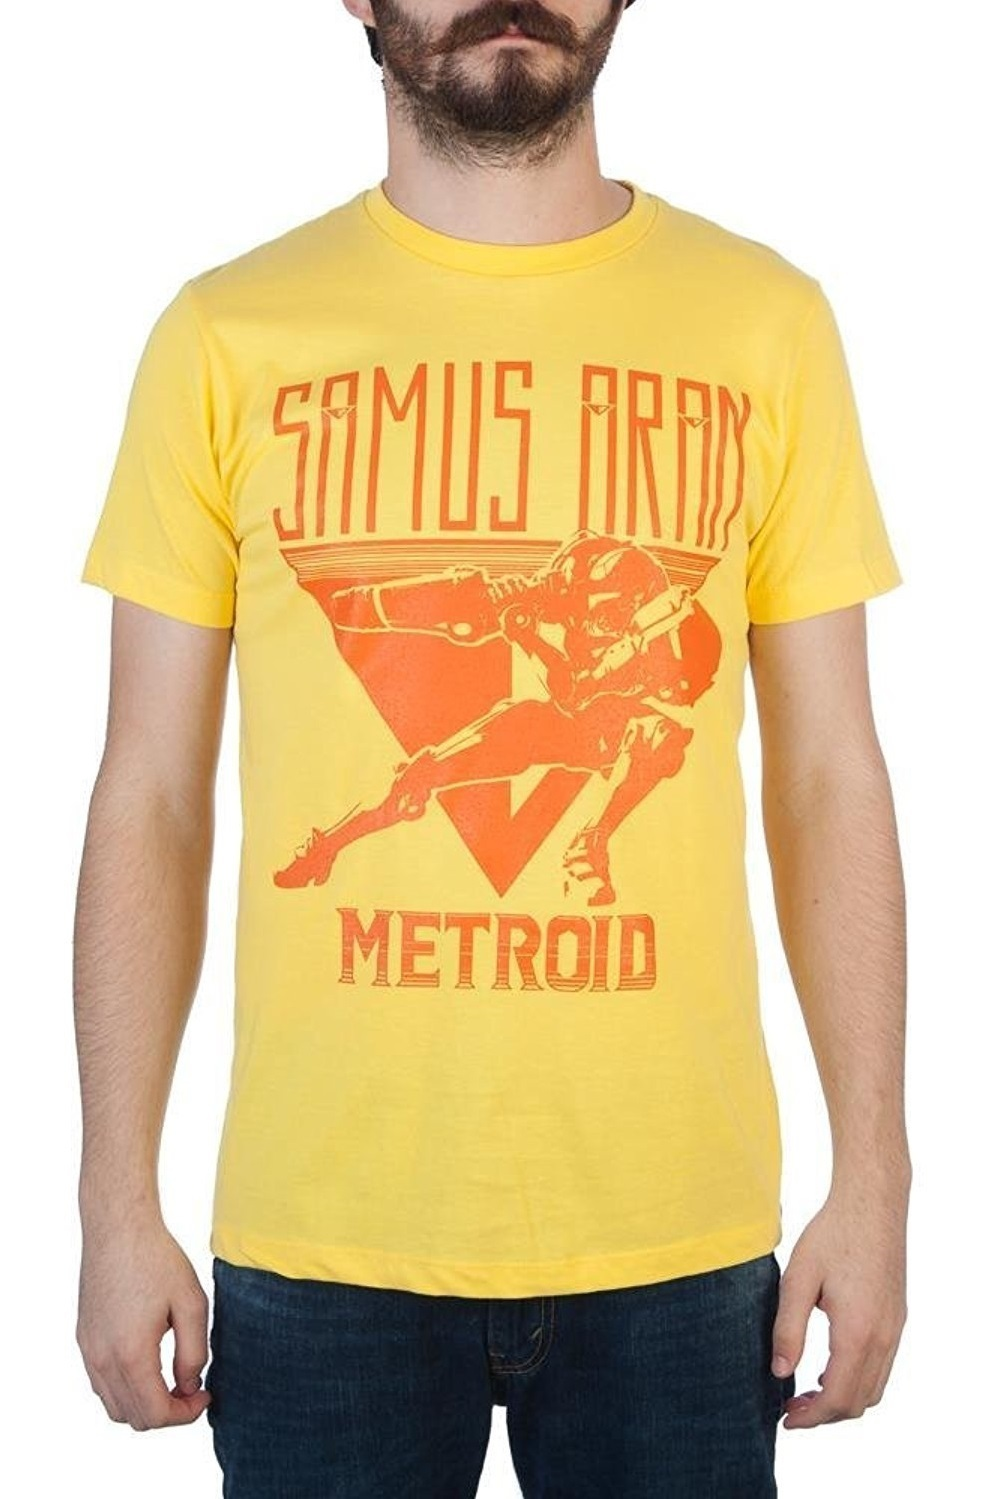 Metroid: Samus Aran - Mens T-Shirt (Medium) image